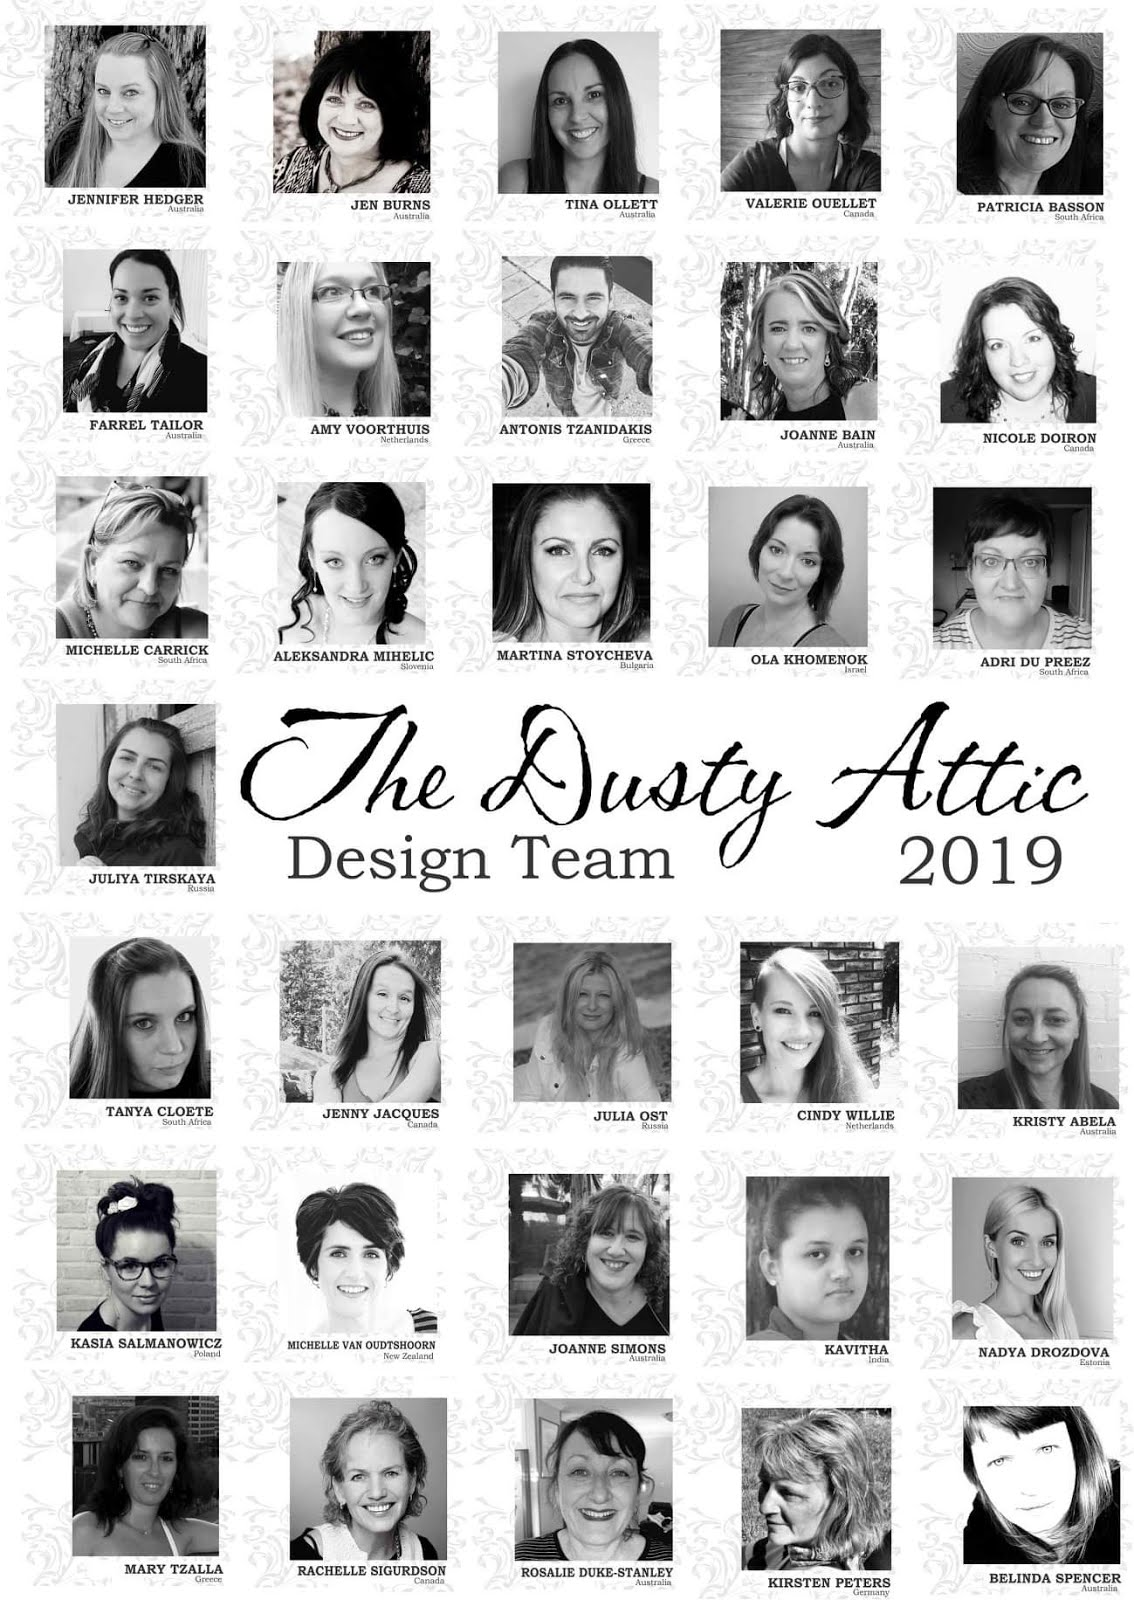 The Dusty Attic Design Team 2019